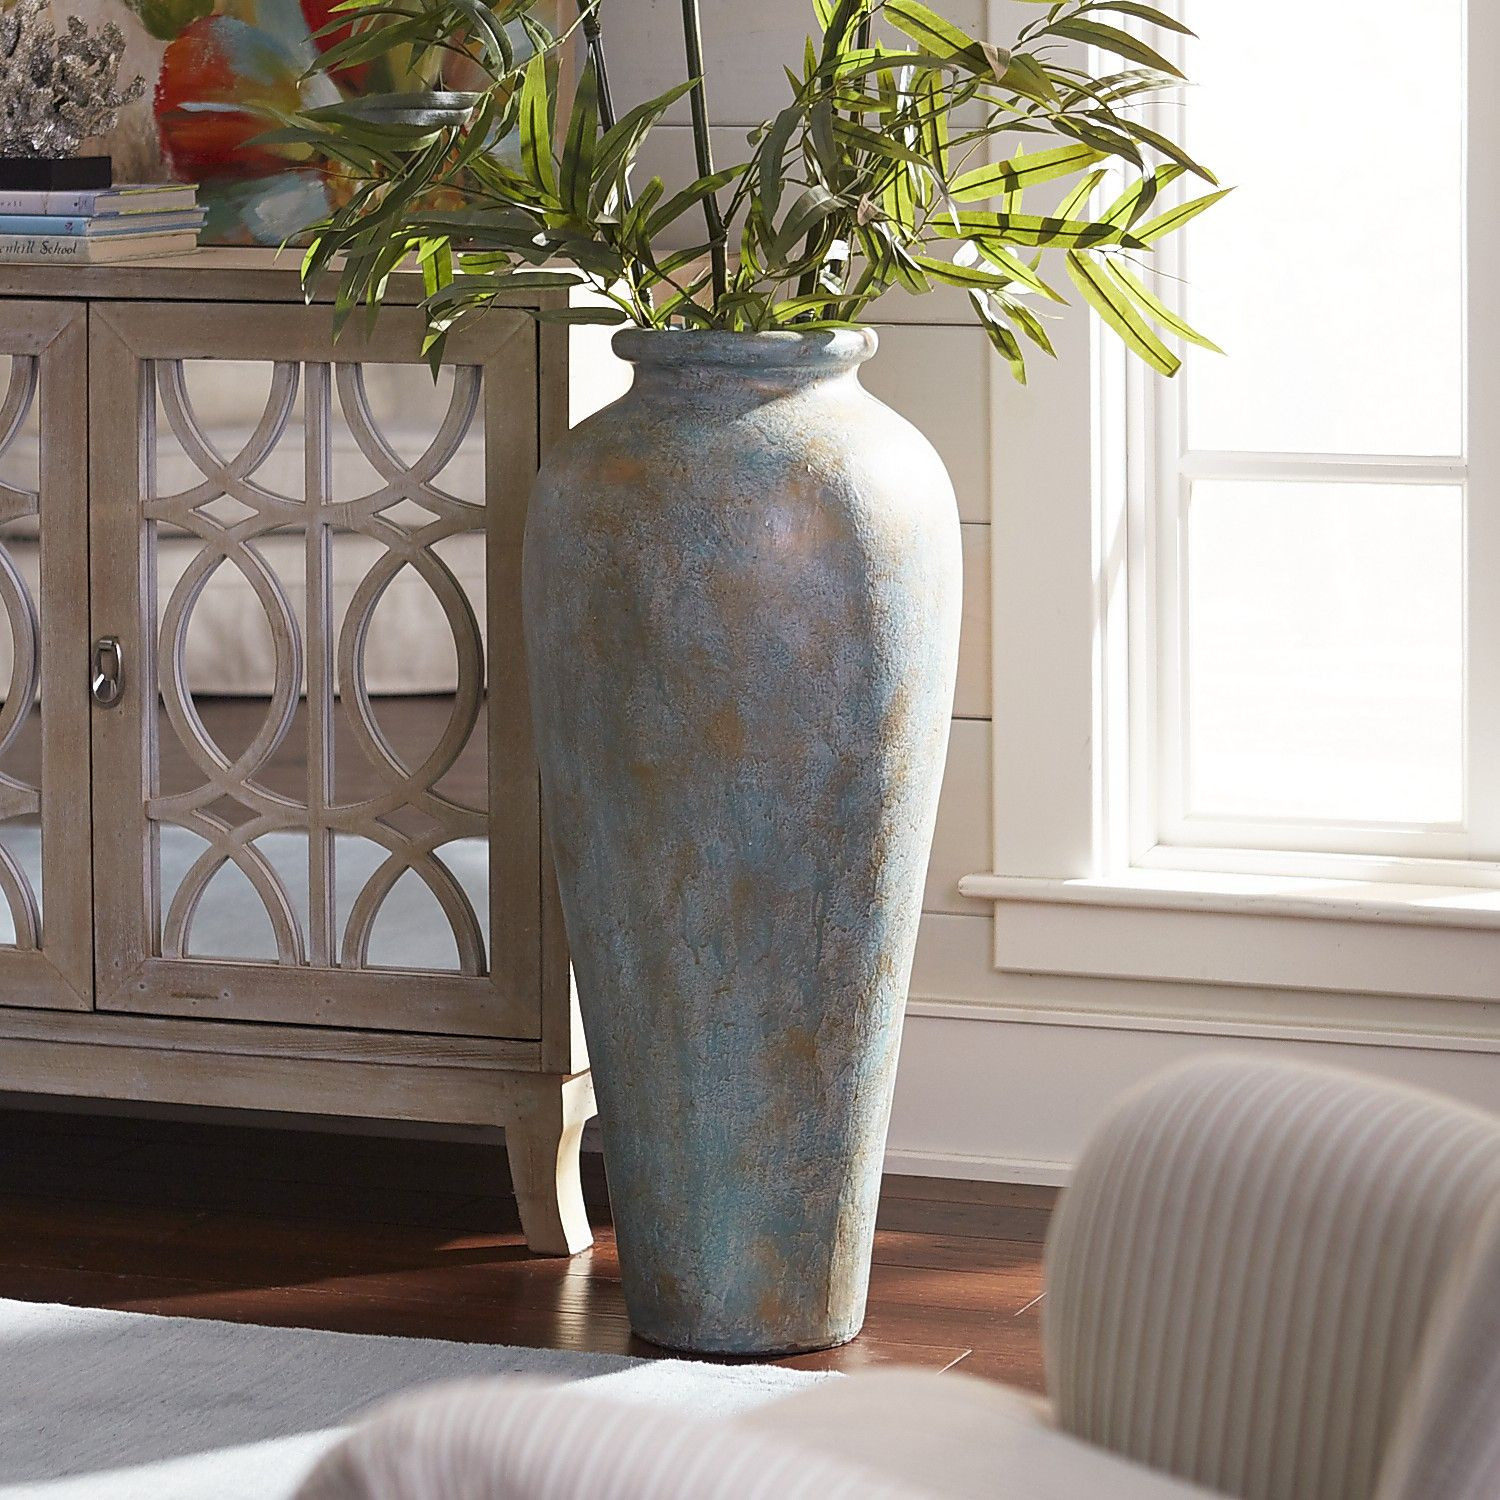 decor for floor vases of blue green patina urn floor vase products pinterest flooring pertaining to blue green patina urn floor vase